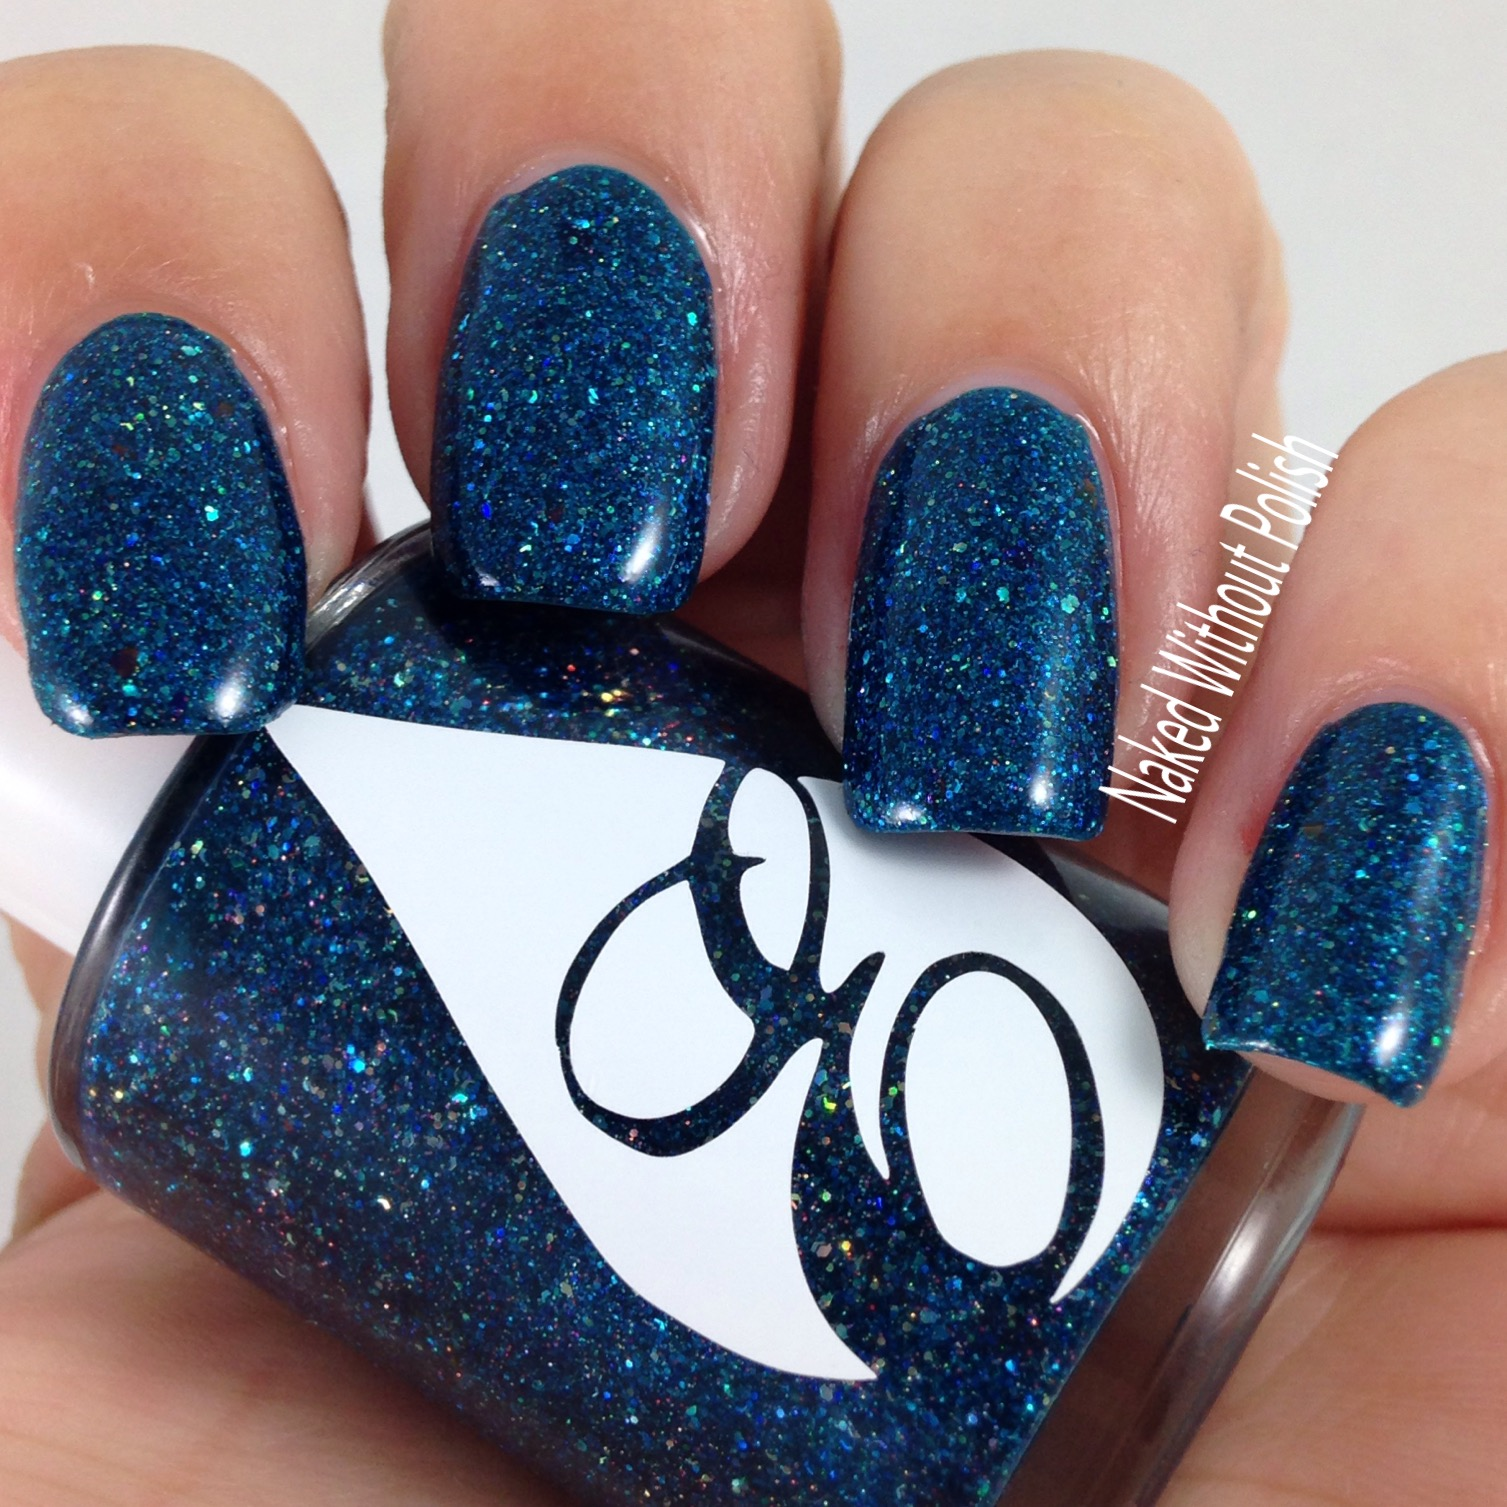 Envy-Lacquer-Make-Waves-6